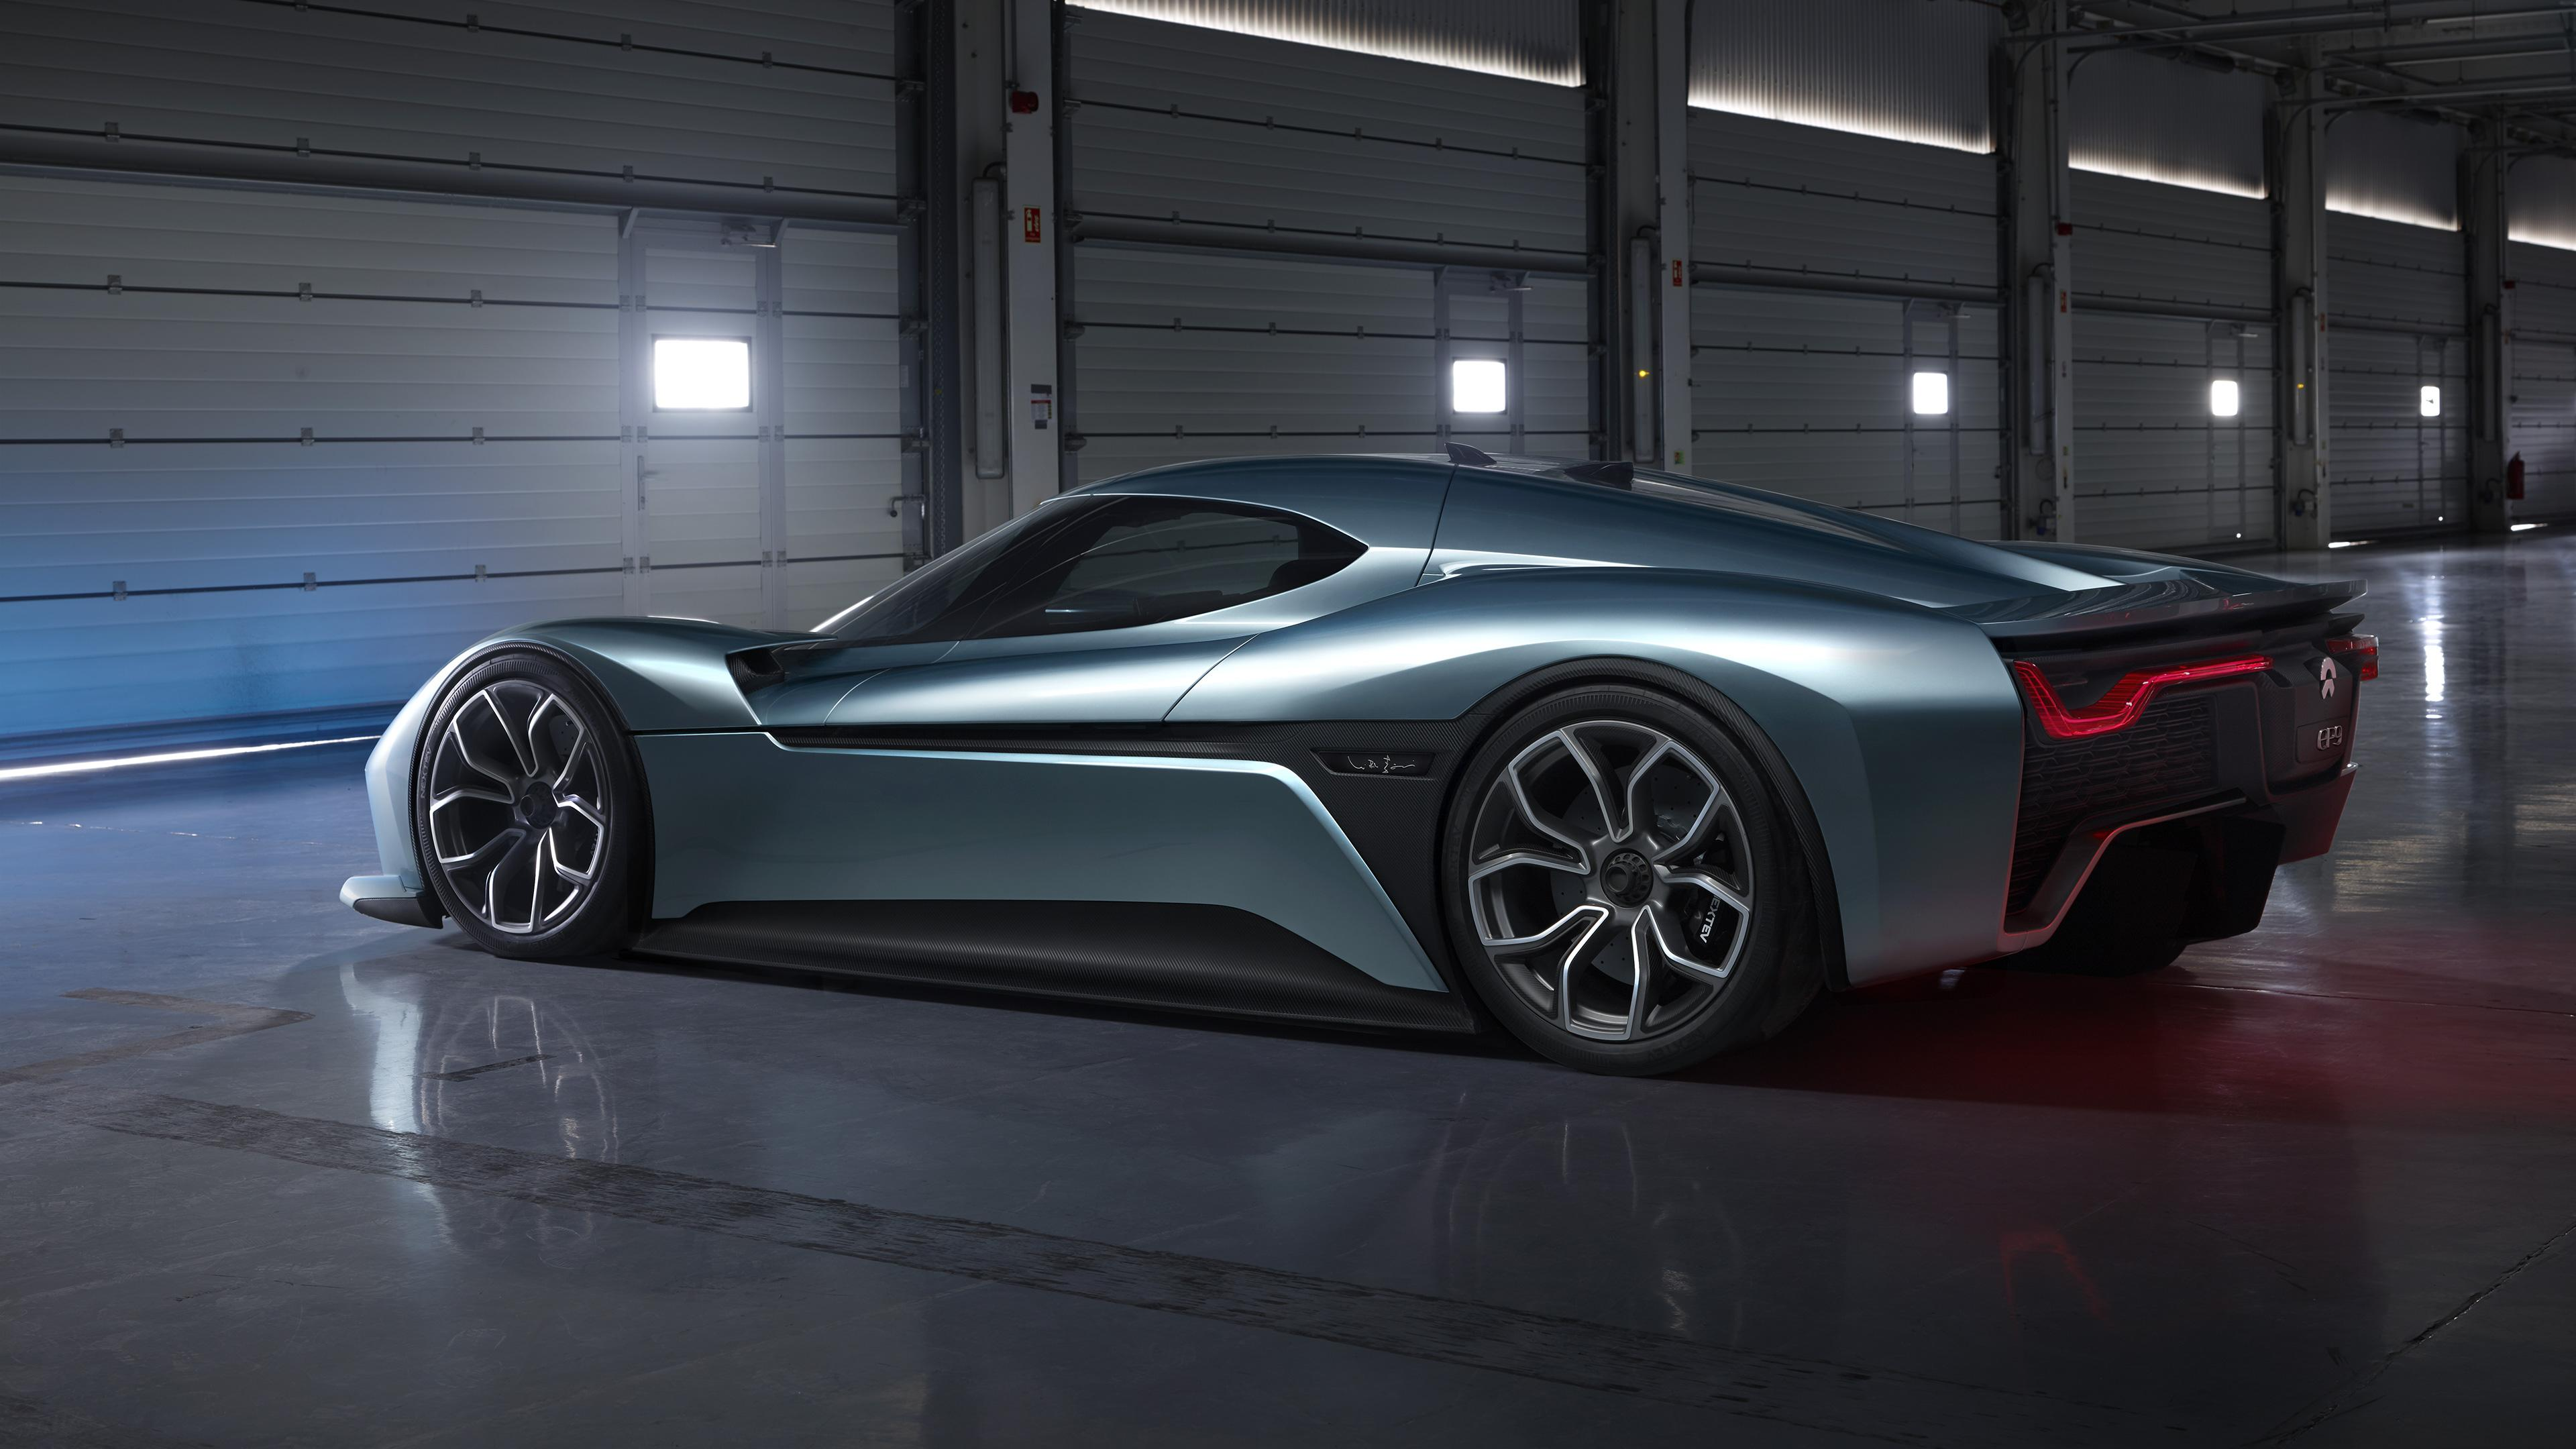 Cute Baby Ultra Hd Wallpapers Nio Ep9 Electric Supercar Nio Ep9 Wallpapers Hd